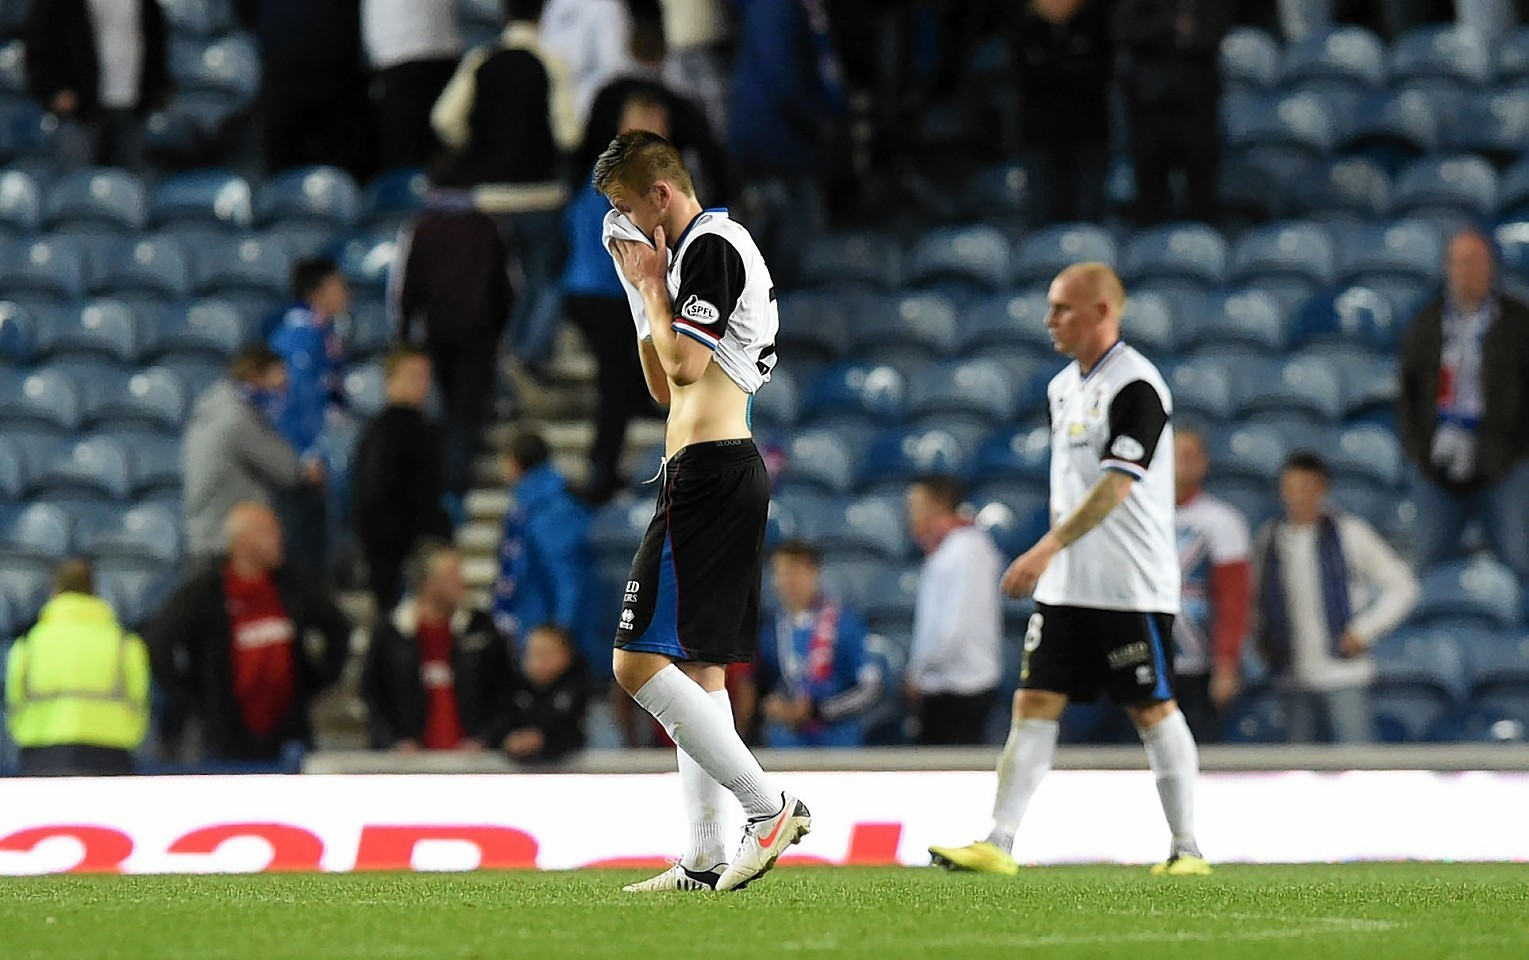 And that was that for Caley Thistle as Liam Polworth trudges off the pitch following the 1-0 defeat